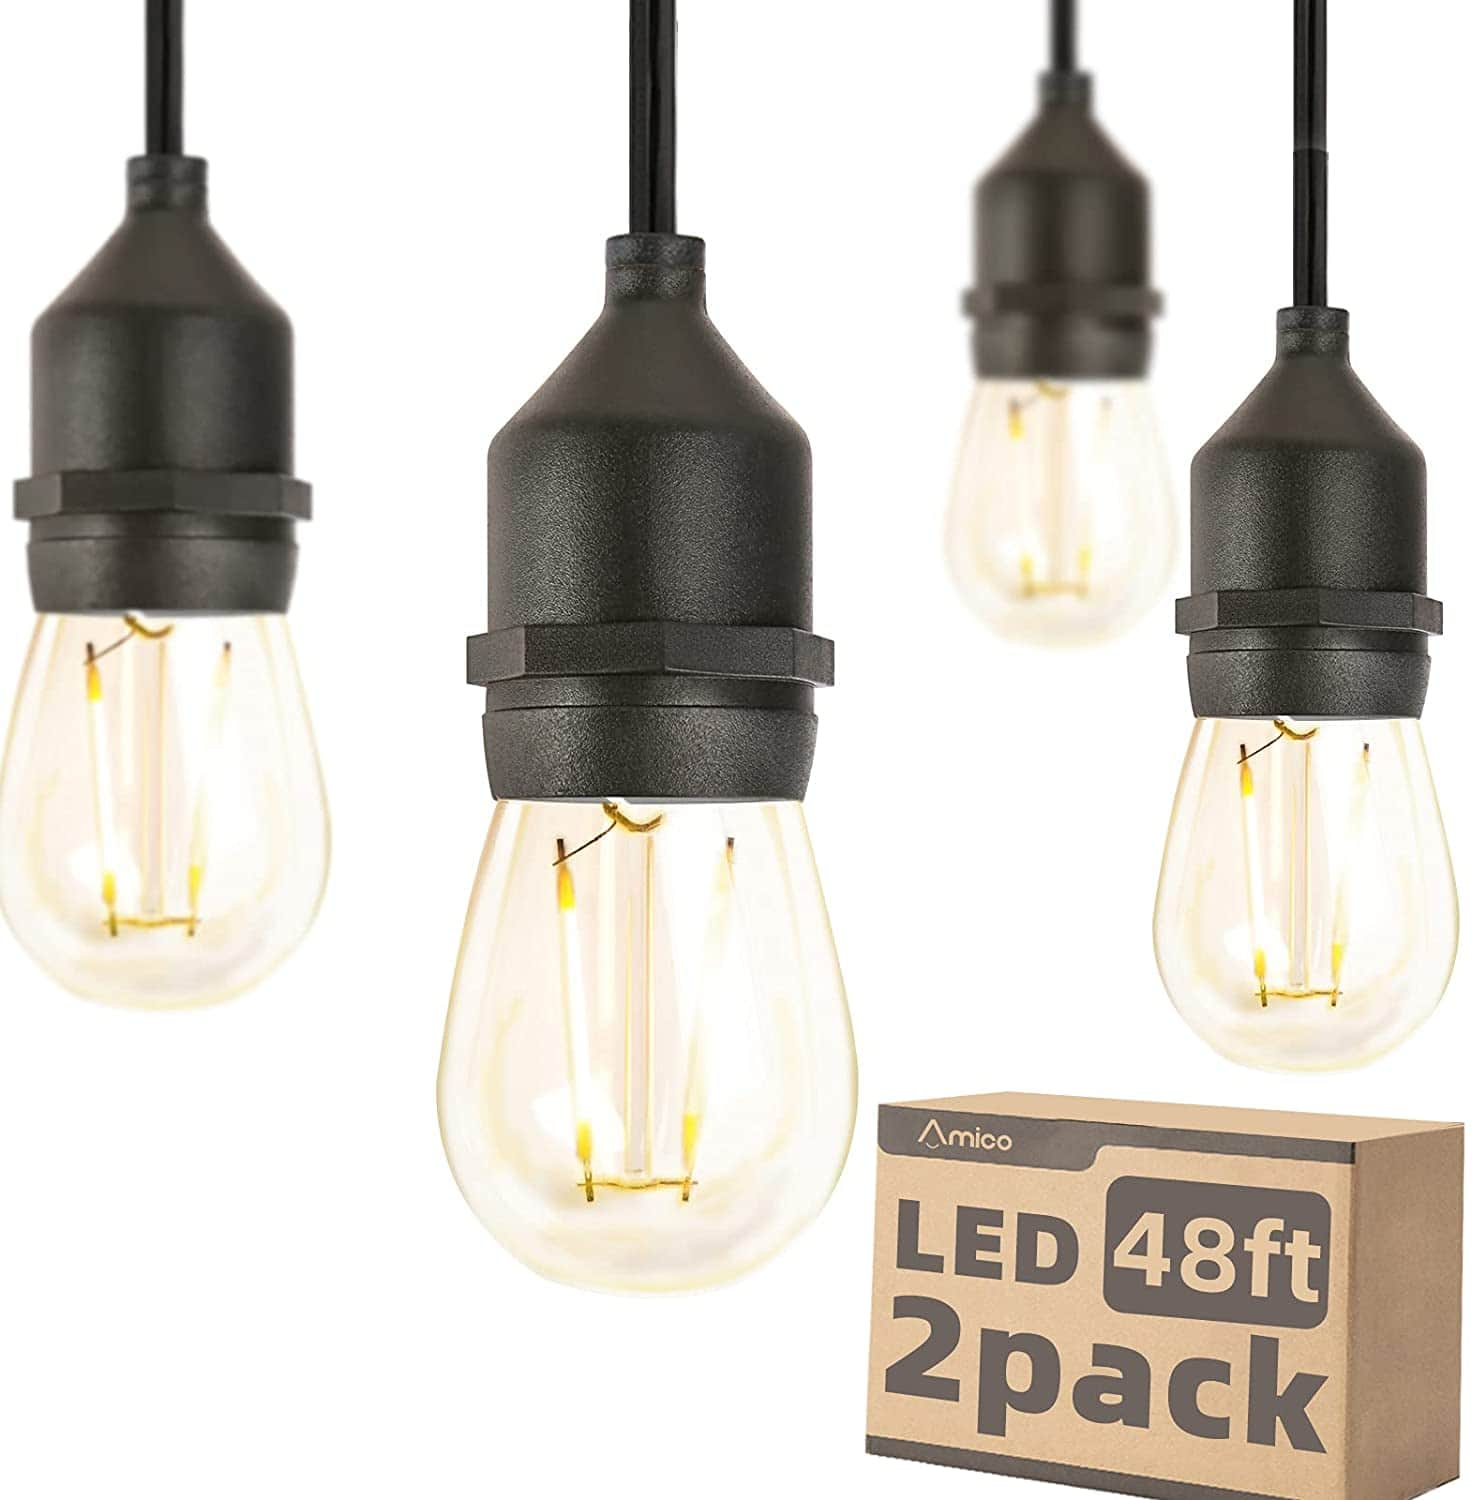 96FT (48FT*2) LED Outdoor String Lights 2W Dimmable $47.39 + Free Shipping w/ Prime